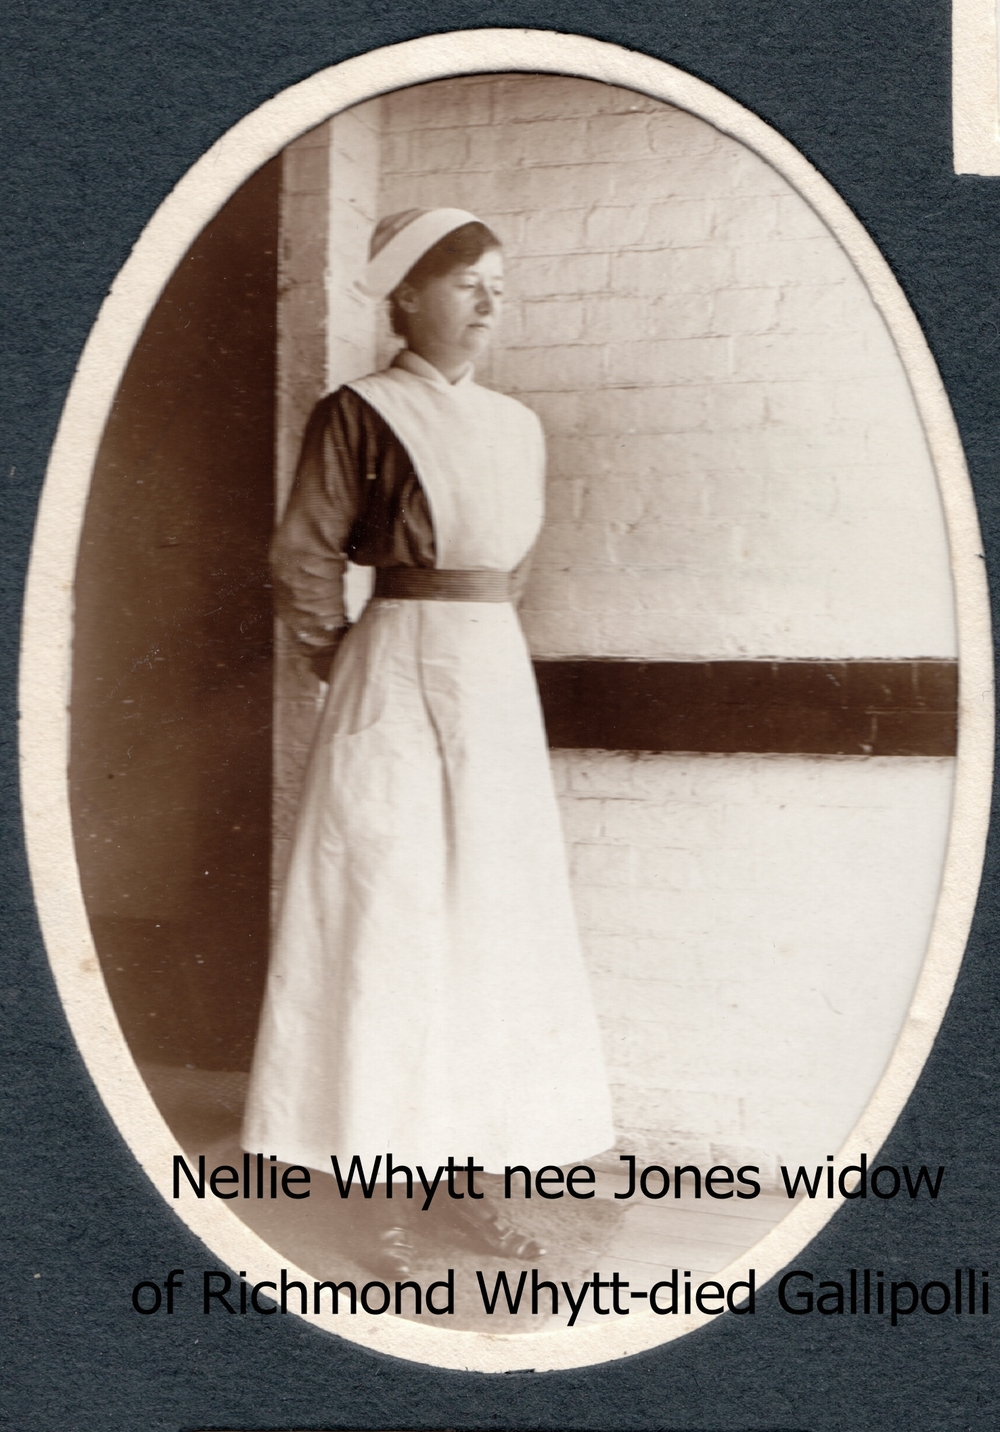 Whytt, Nellie nee Jones, widow of Richmond Whytt who died at Gallipoli.jpg